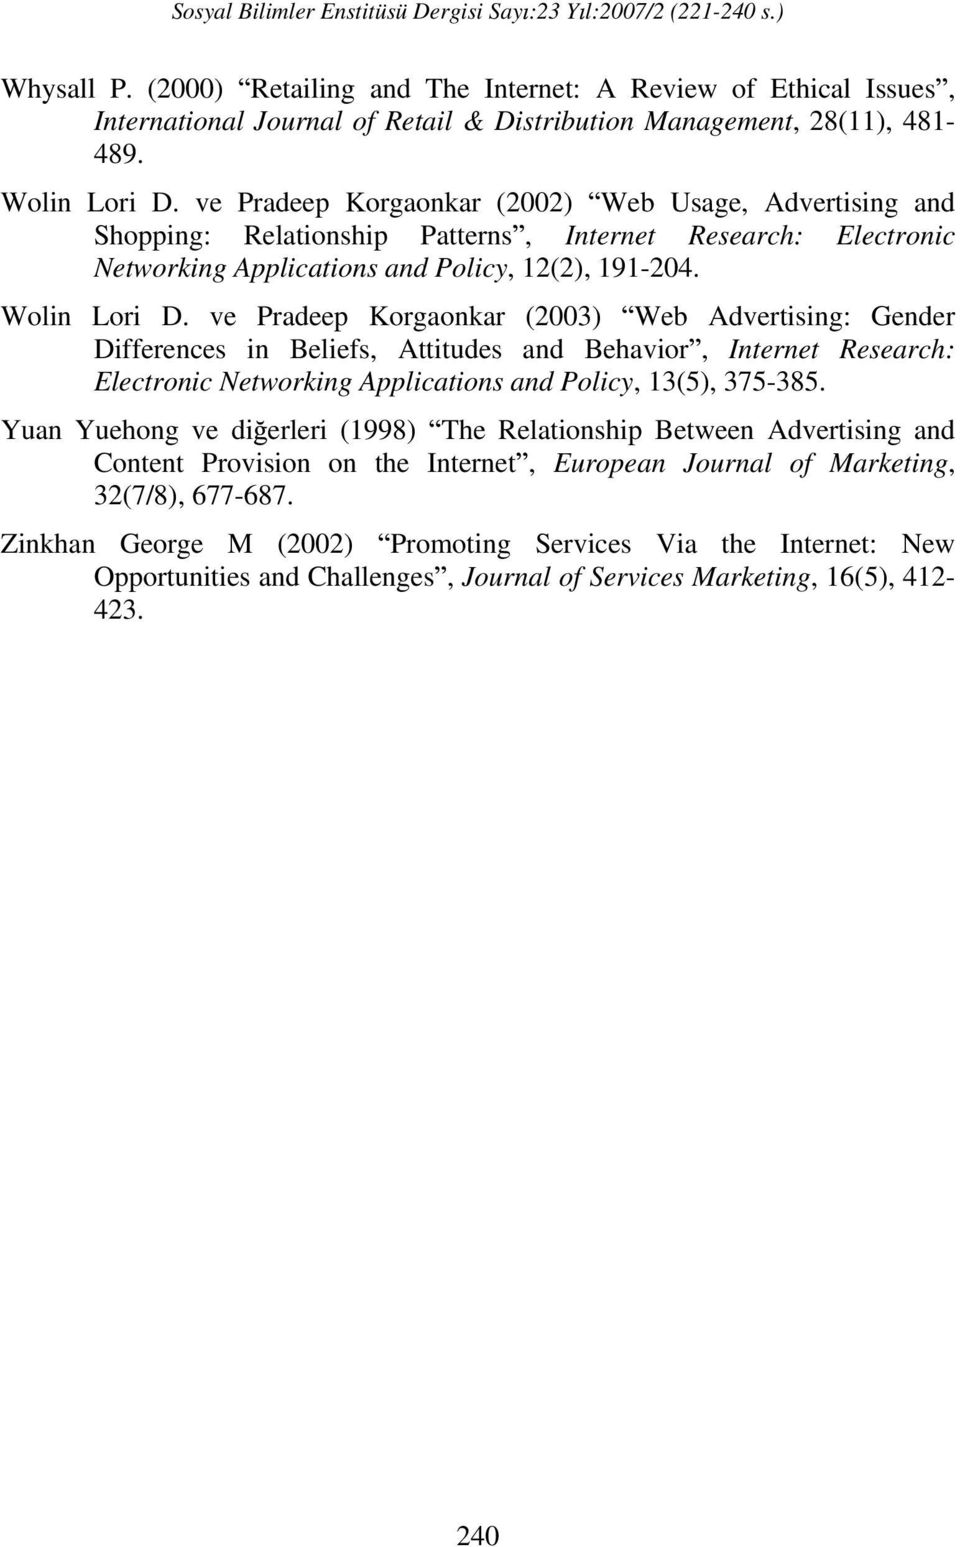 ve Pradeep Korgaonkar (2003) Web Advertising: Gender Differences in Beliefs, Attitudes and Behavior, Internet Research: Electronic Networking Applications and Policy, 13(5), 375-385.